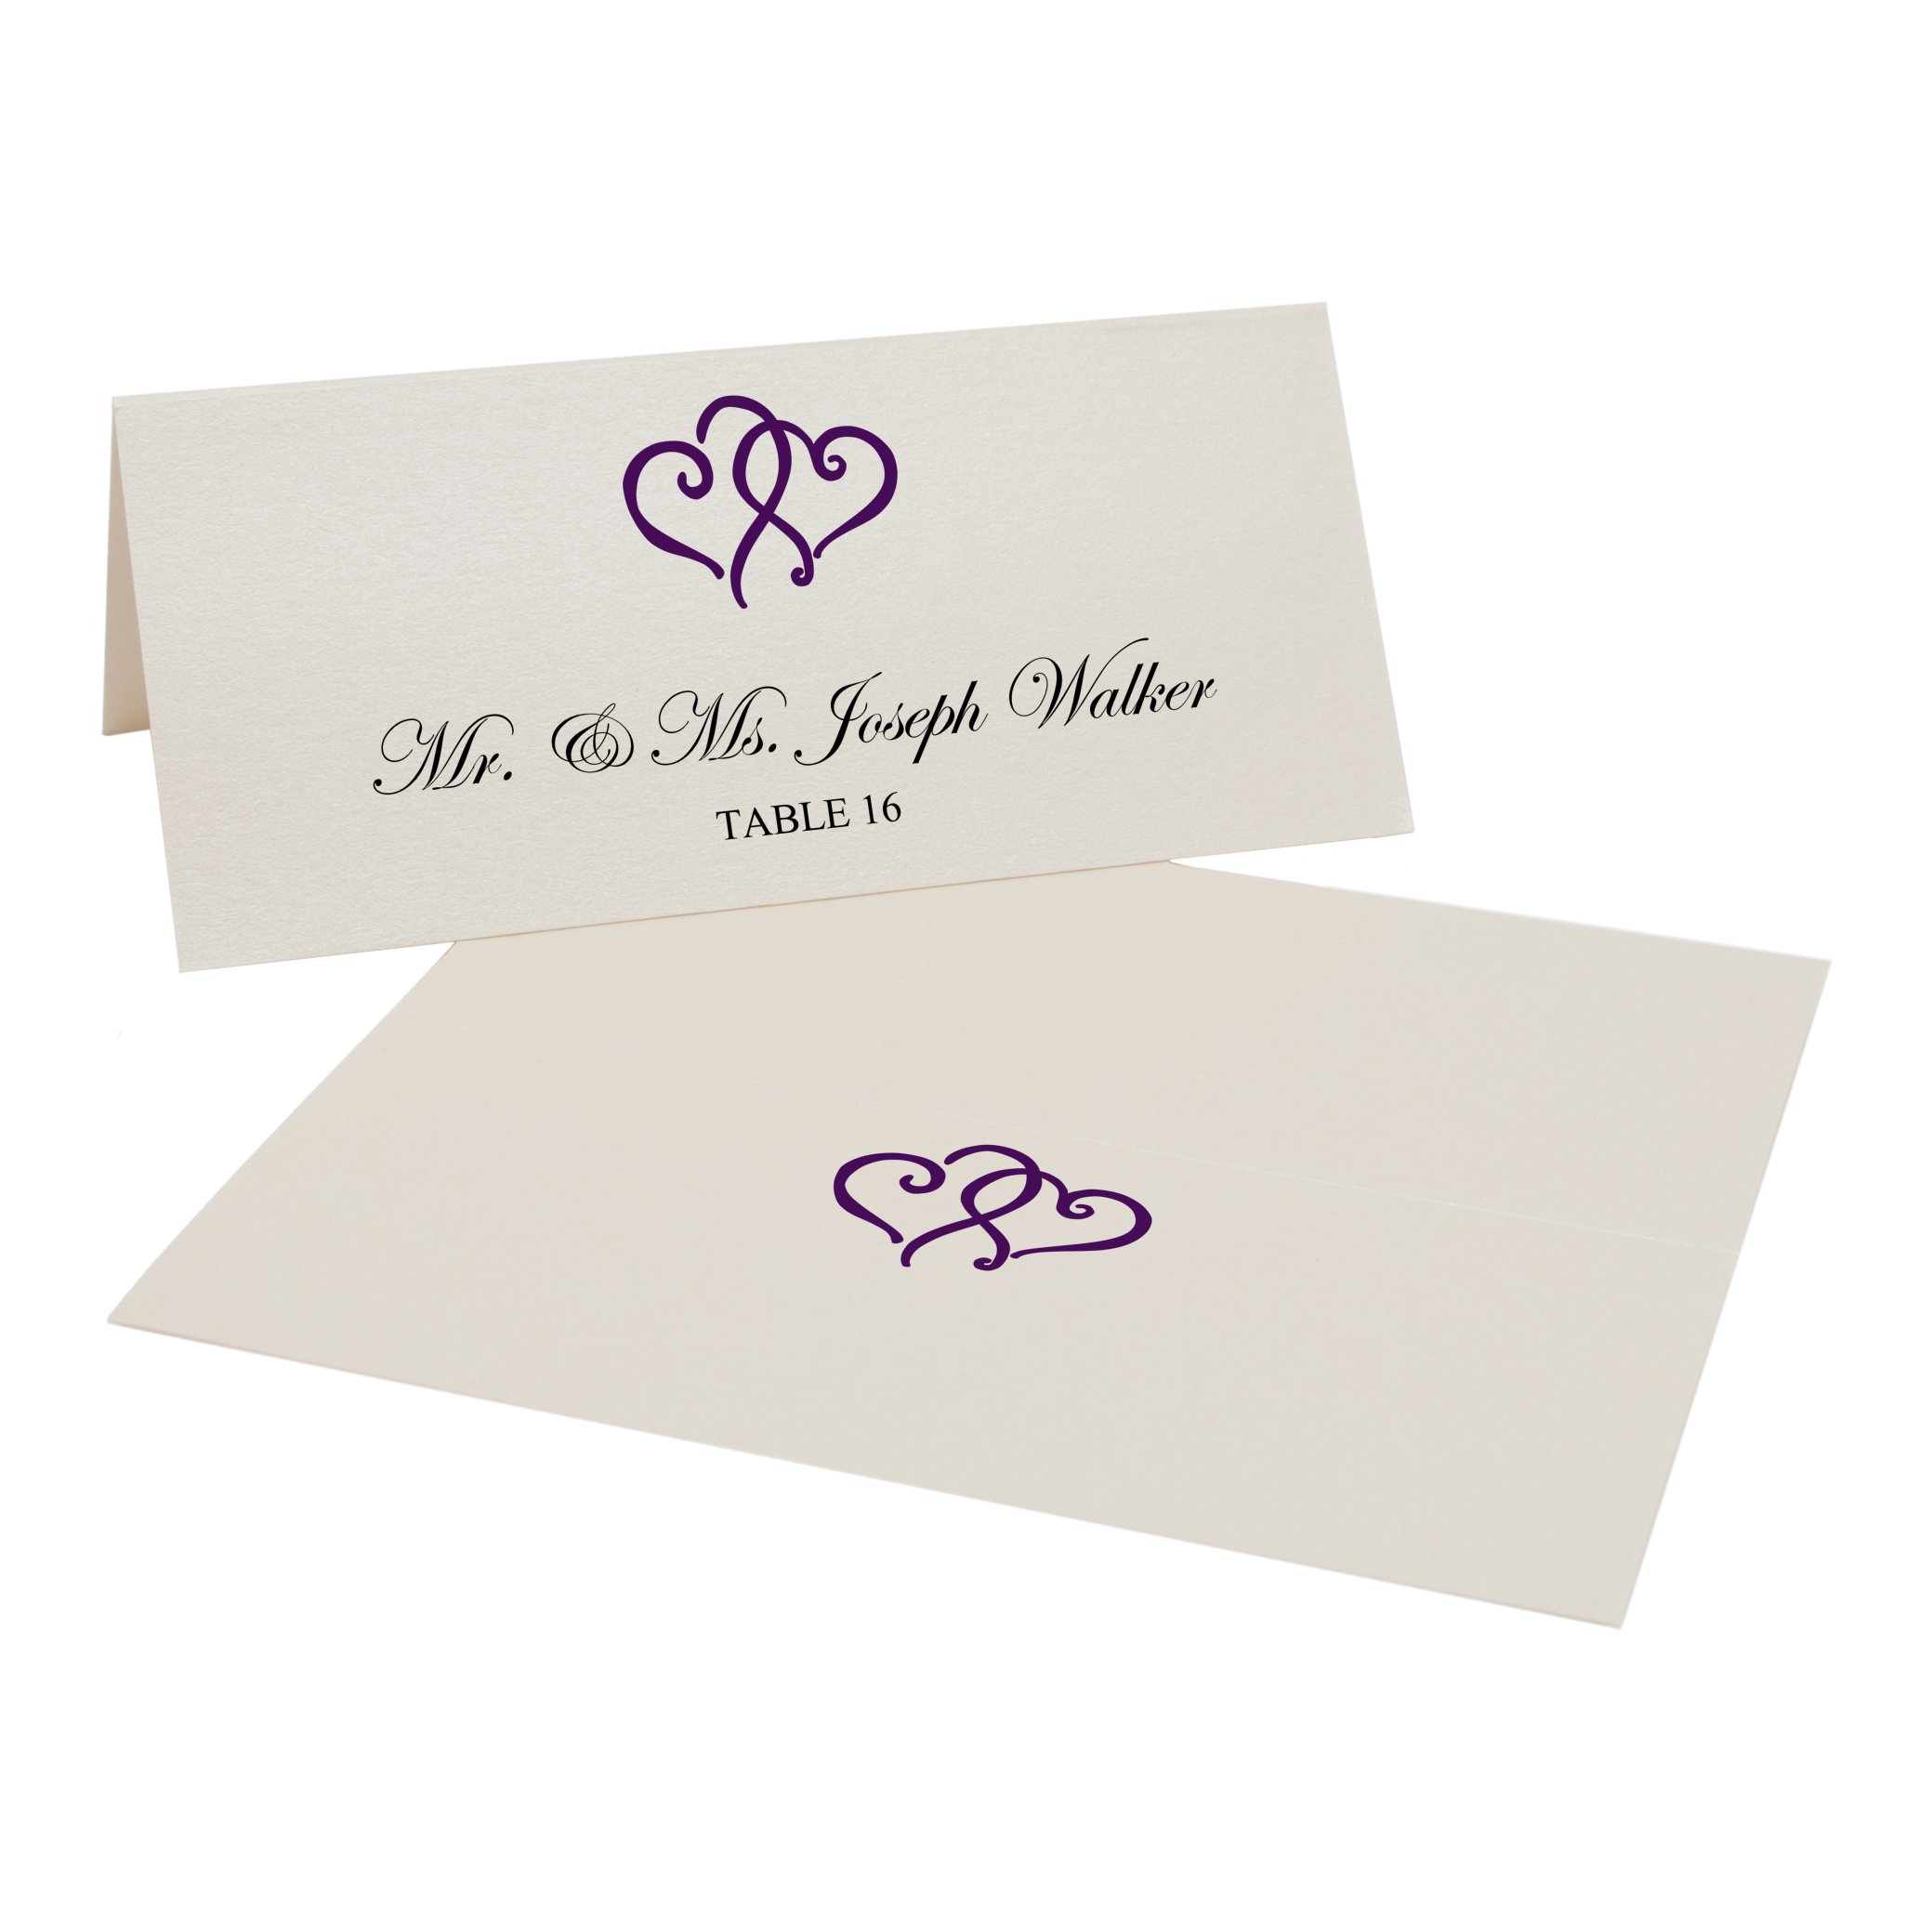 Linked Hearts Easy Print Place Cards, Champagne, Eggplant, Set of 425 (107 Sheets)